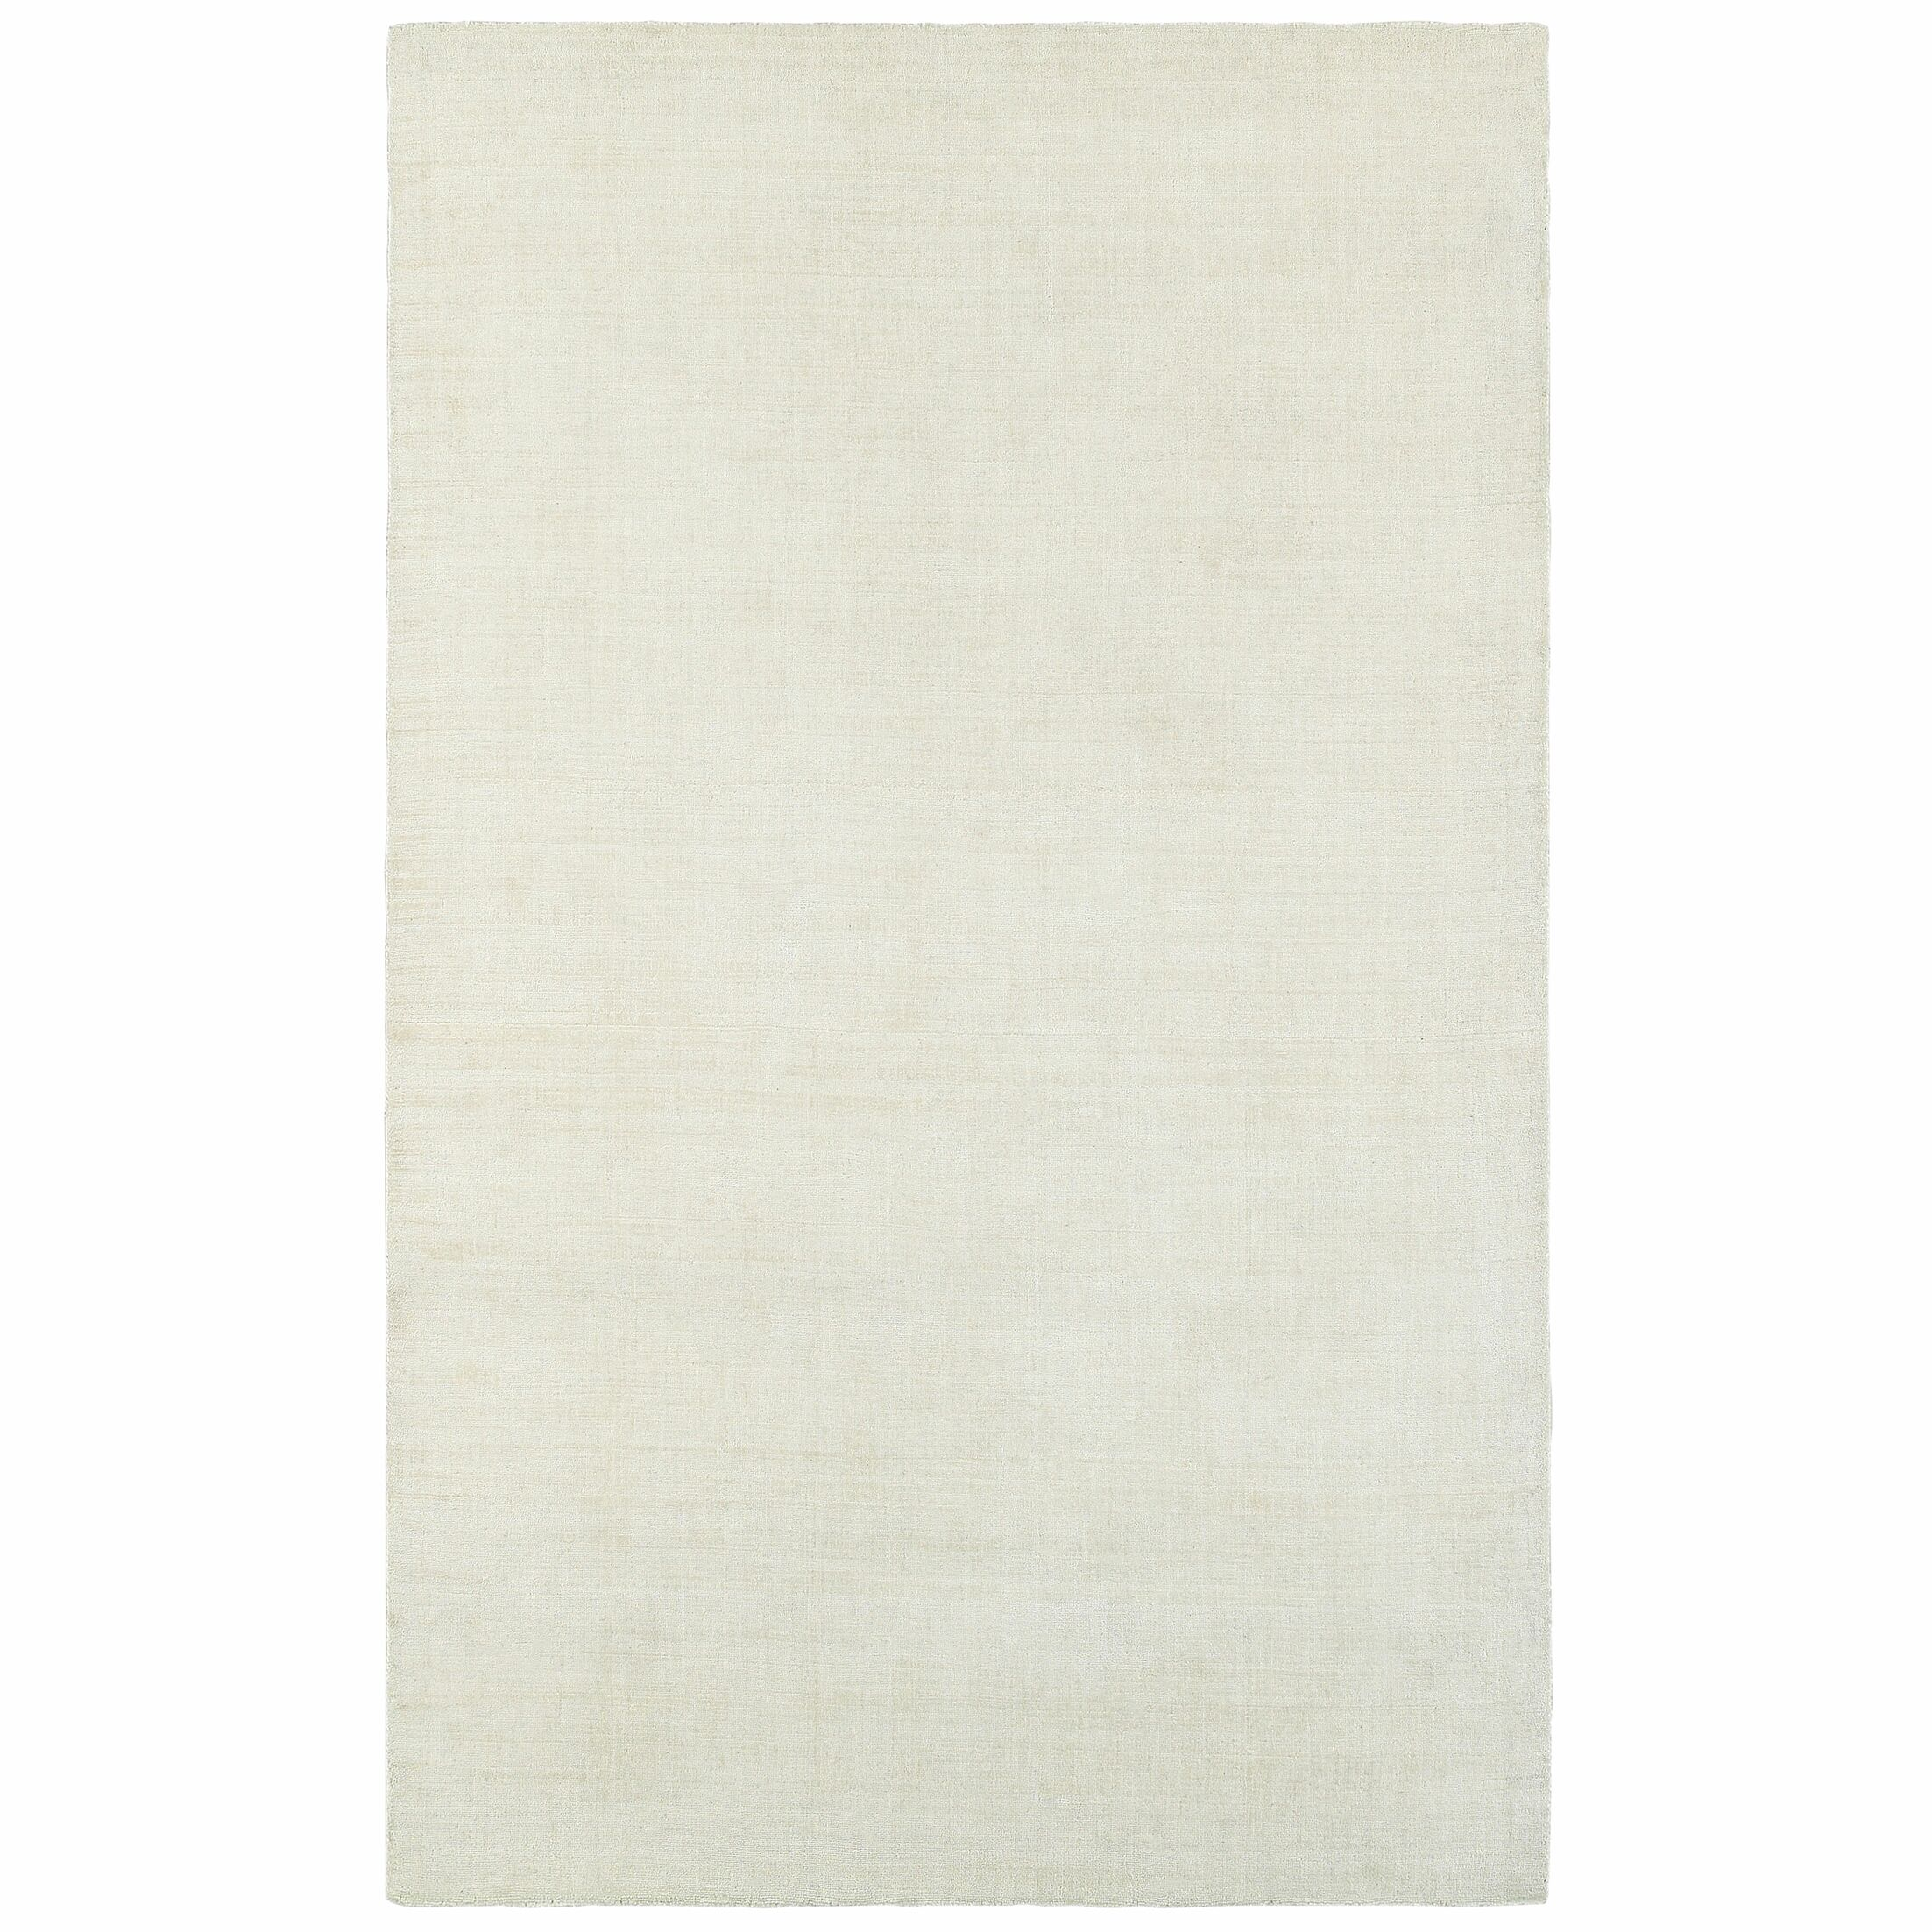 Grimes Plush Hand Tufted Ivory Area Rug Rug Size: Rectangle 8' x 10'